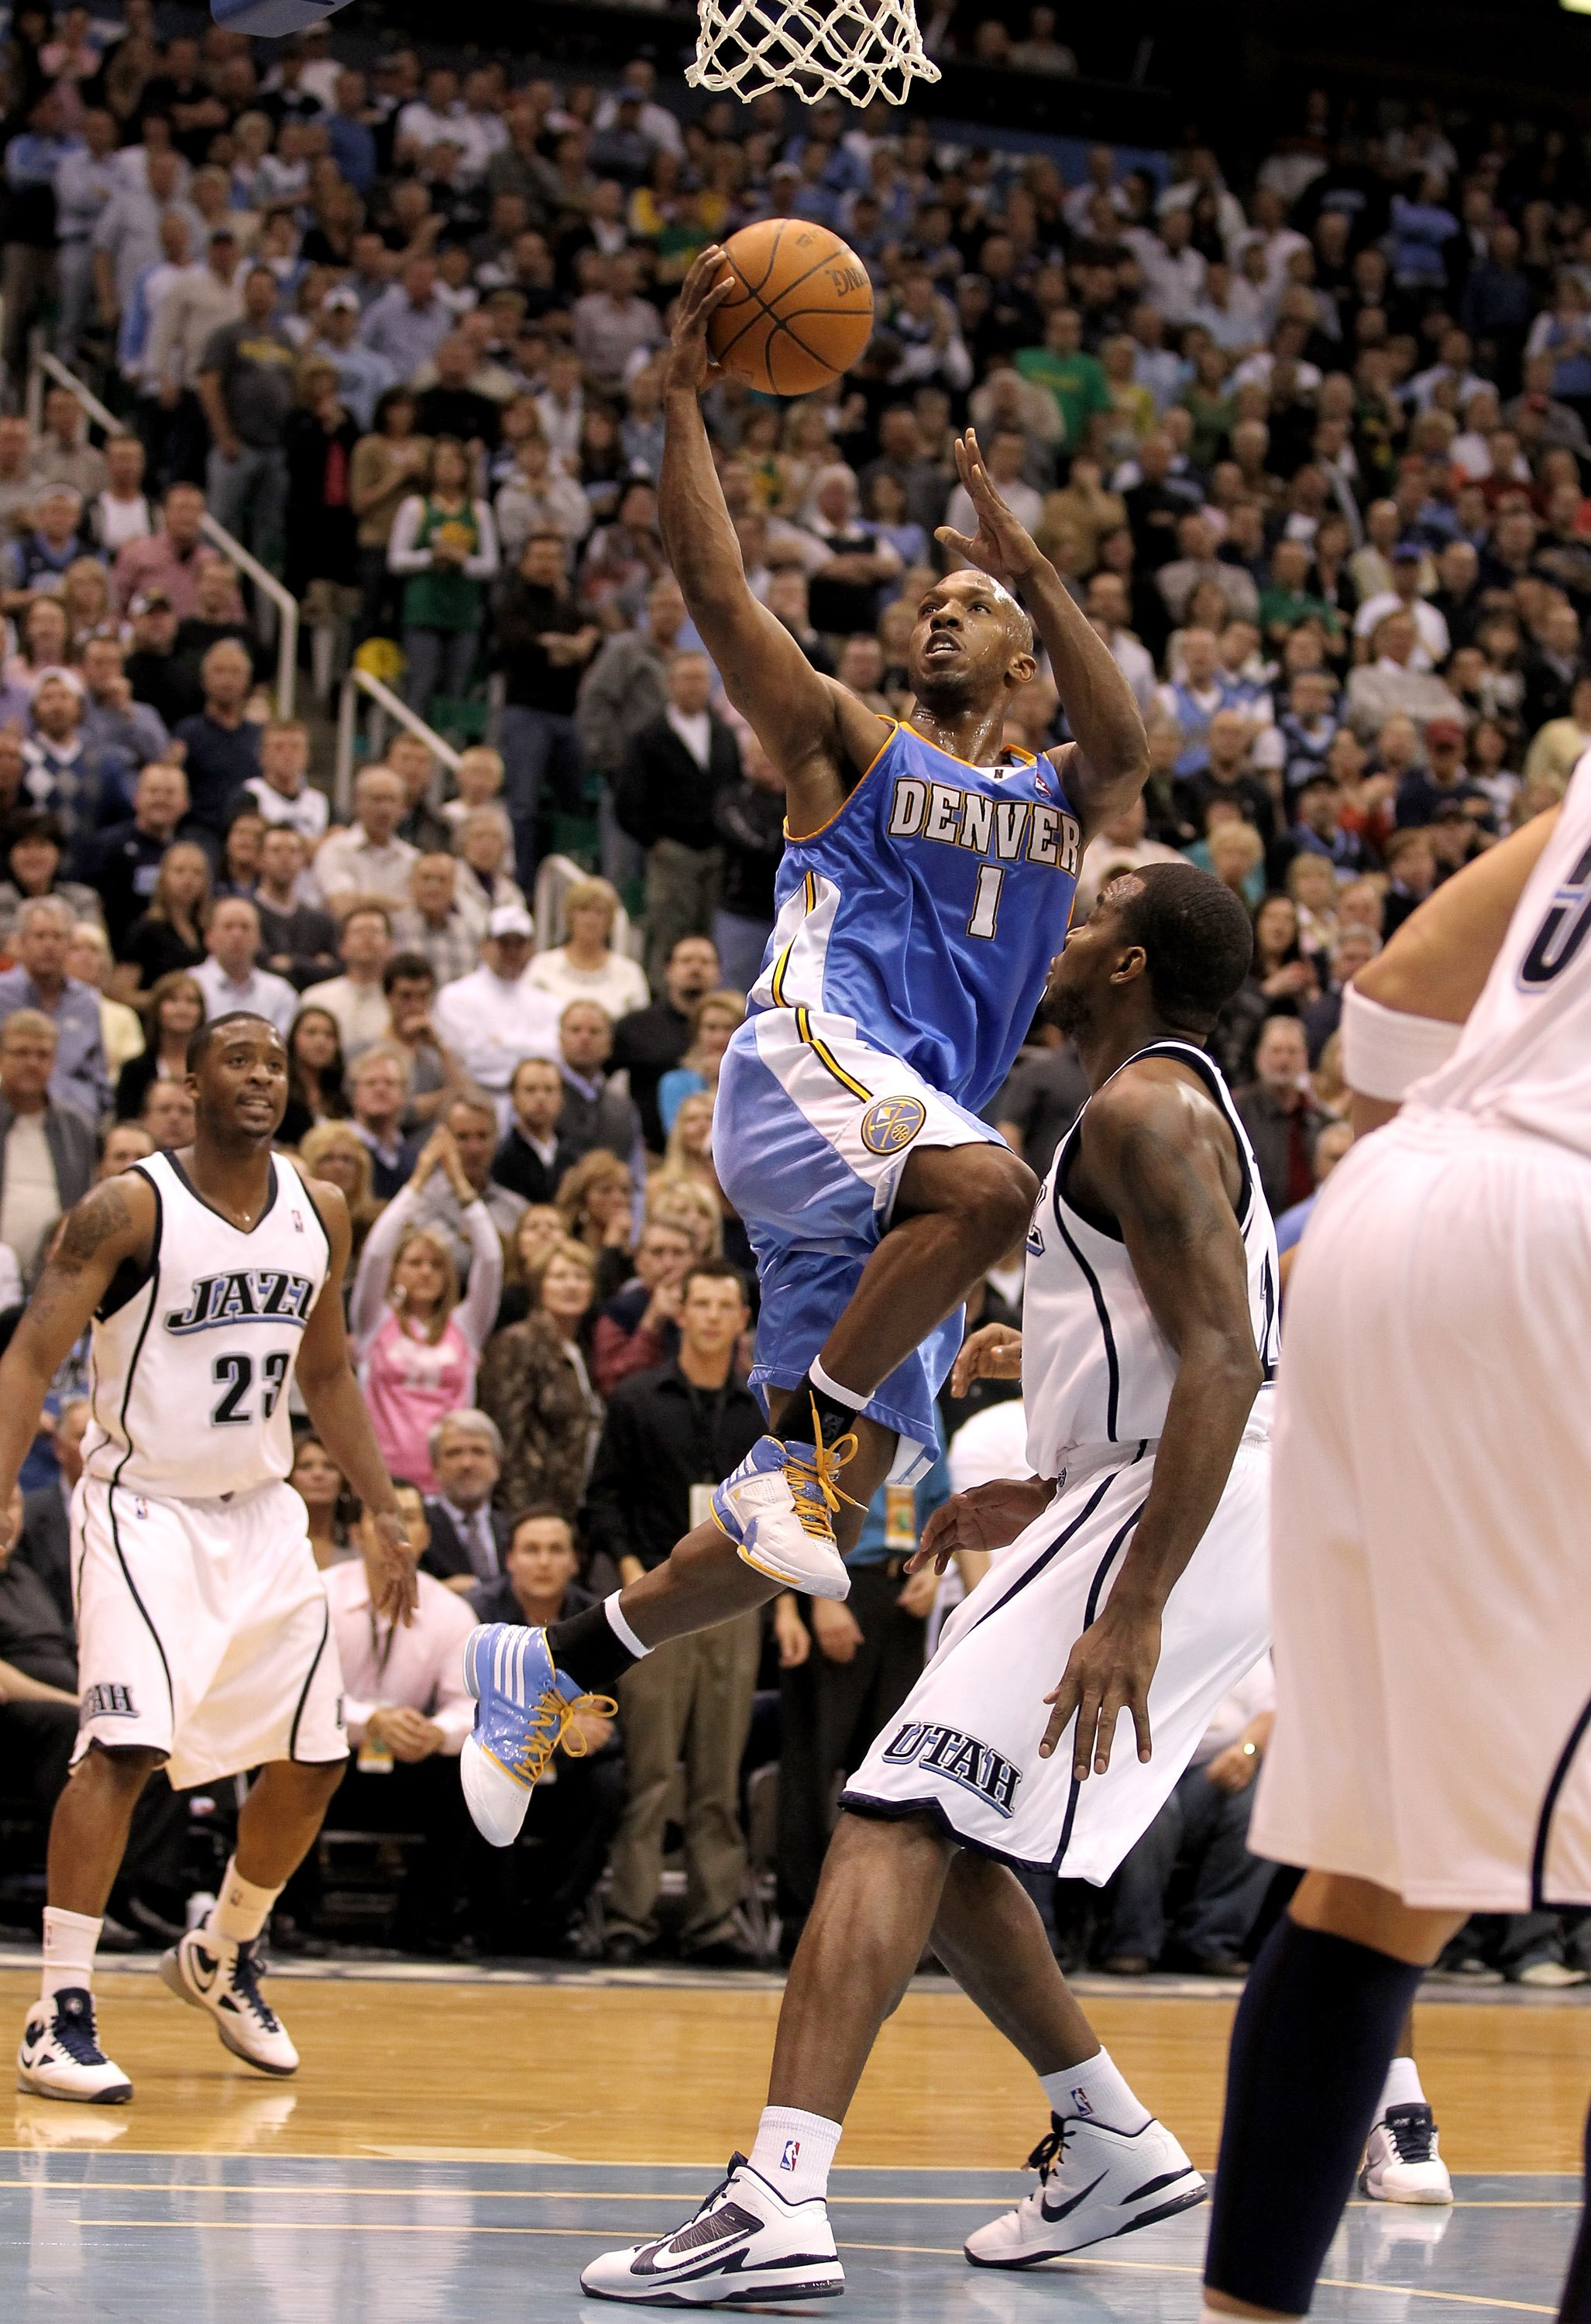 SALT LAKE CITY - APRIL 30:  Chauncey Billups #1 of the Denver Nuggets drives to the basket during their game against the Utah Jazz in Game Six of the Western Conference Quarterfinals of the 2010 NBA Playoffs at EnergySolutions Arena on April 30, 2010 in S